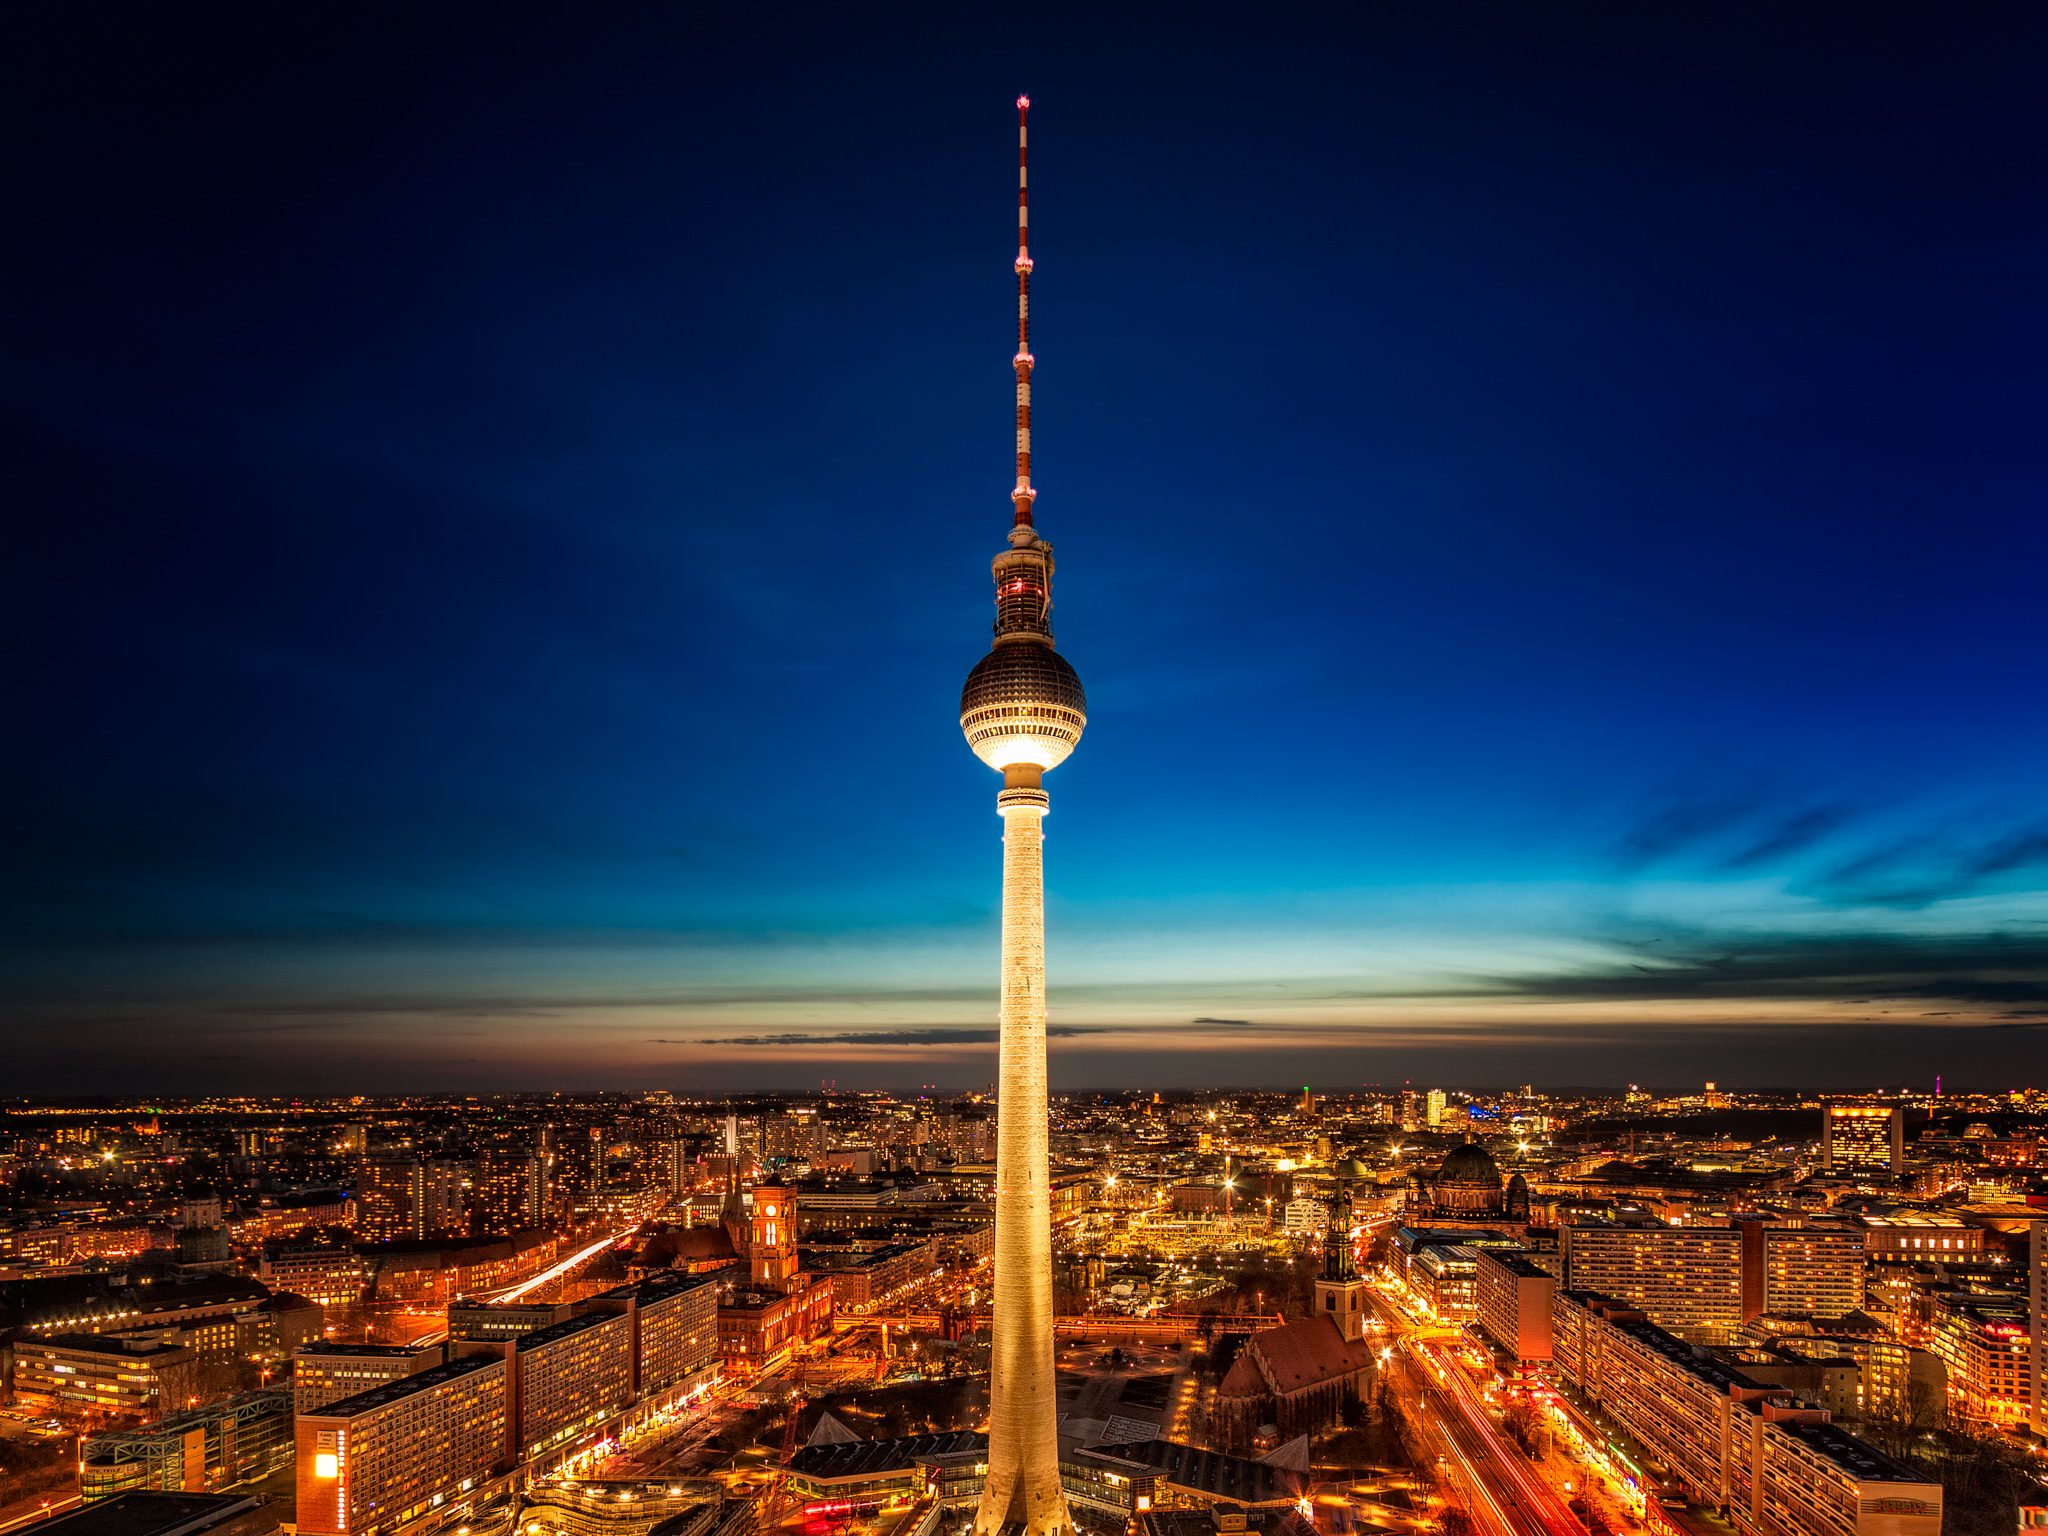 The TV Tower of Berlin captured from Park Inn by Radisson Hotel.